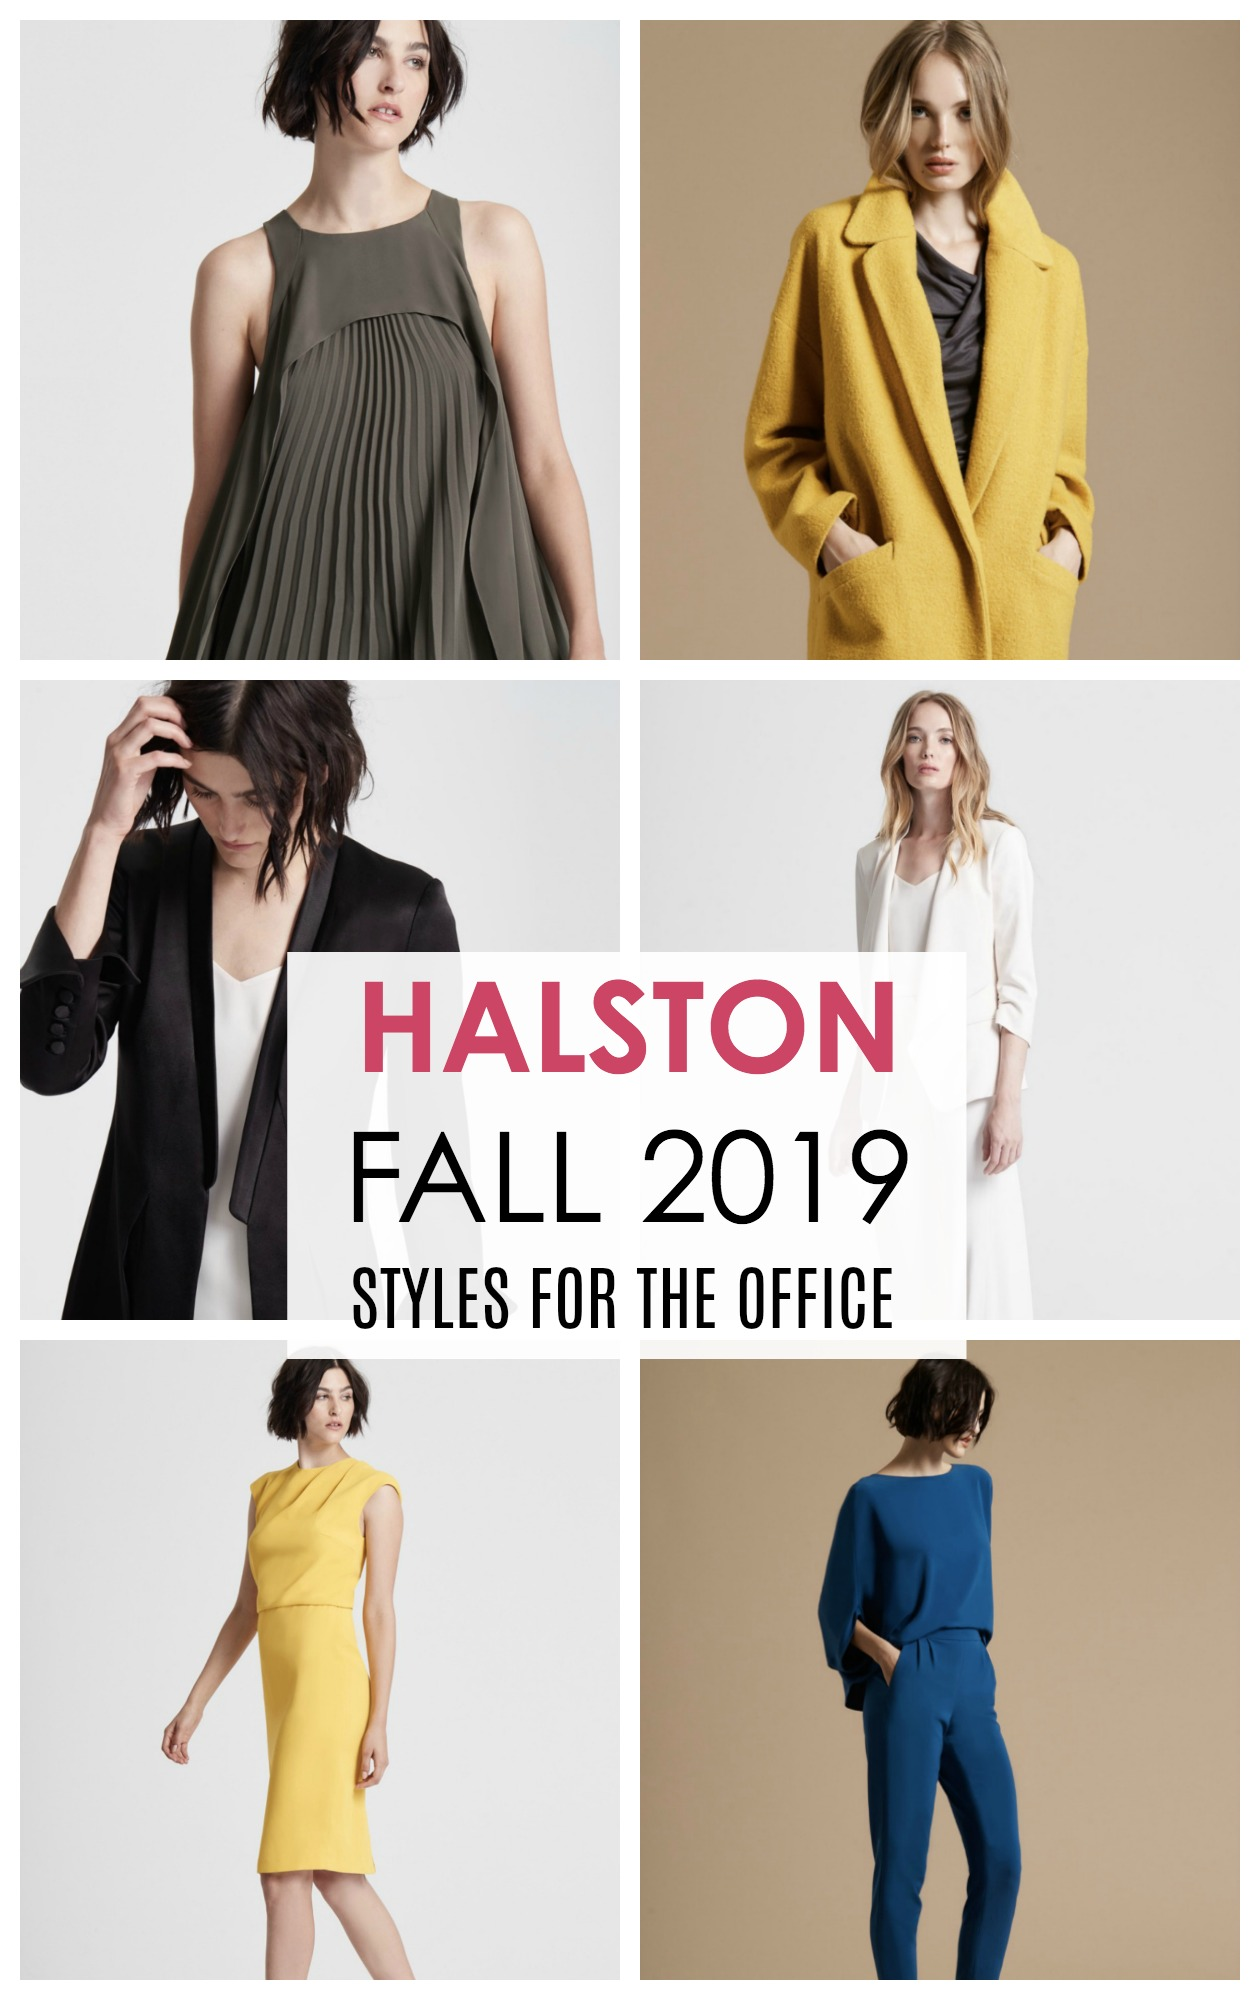 Halston Fall Collection I Styles to Wear to Work #Halston #fallfashion #styleinspo #styleblogger #fashionblogger #fashionblog